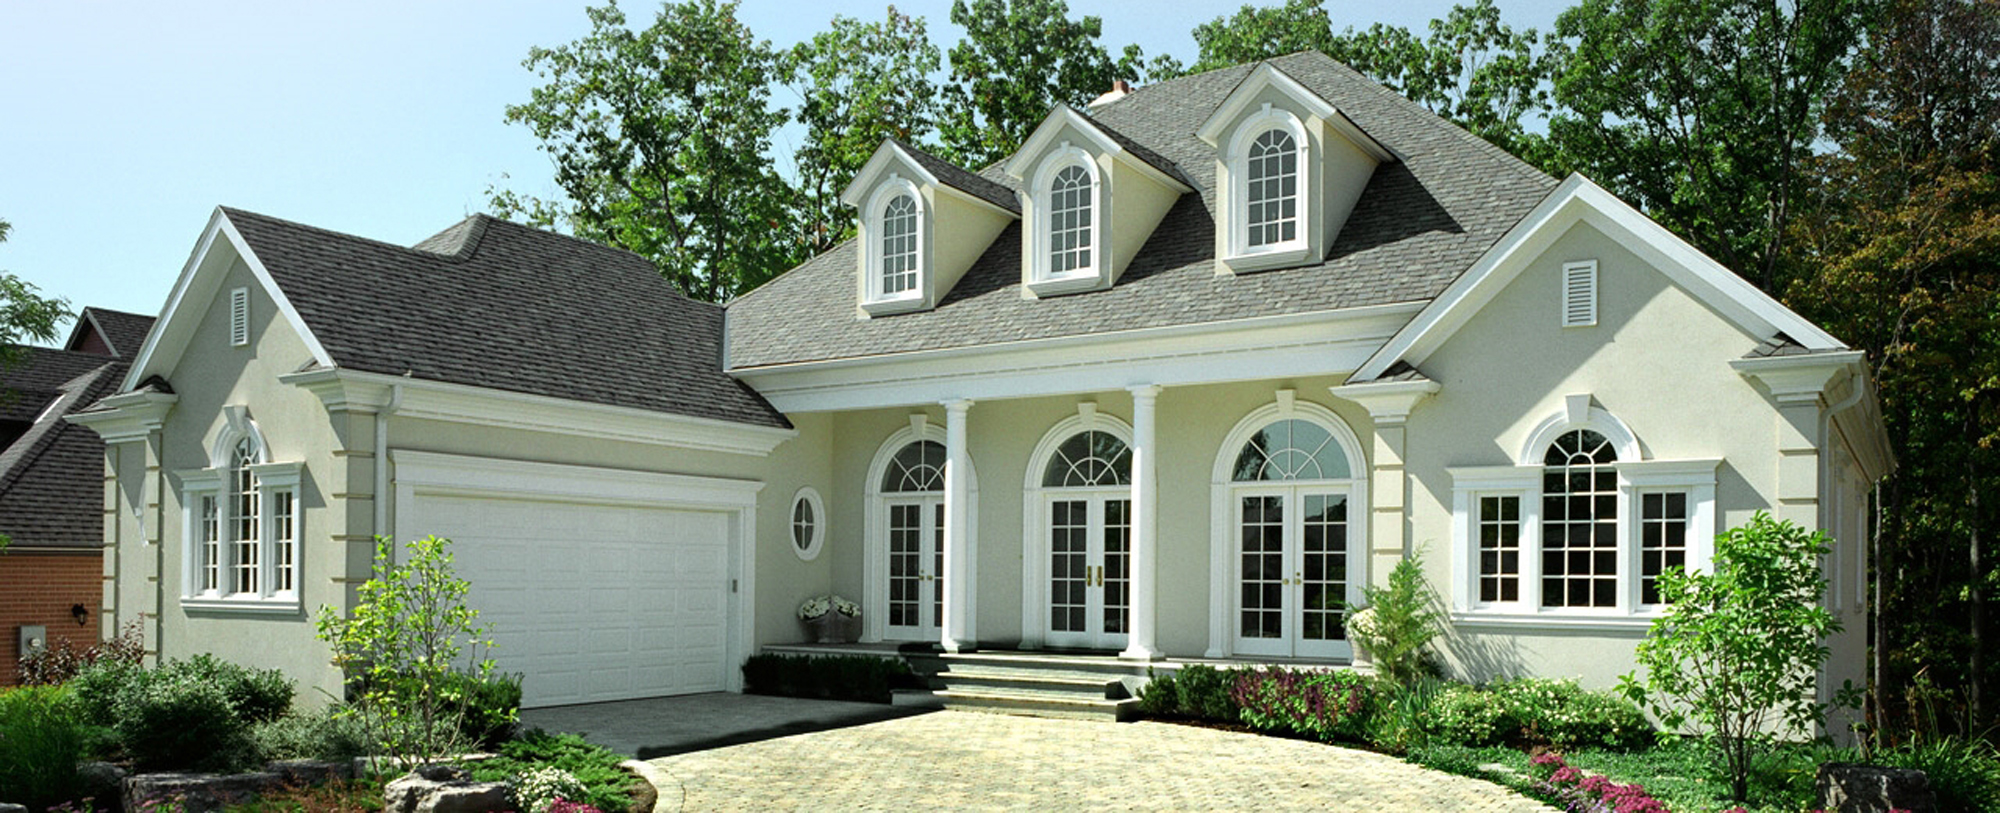 single family homes for sale in Northern Virginia